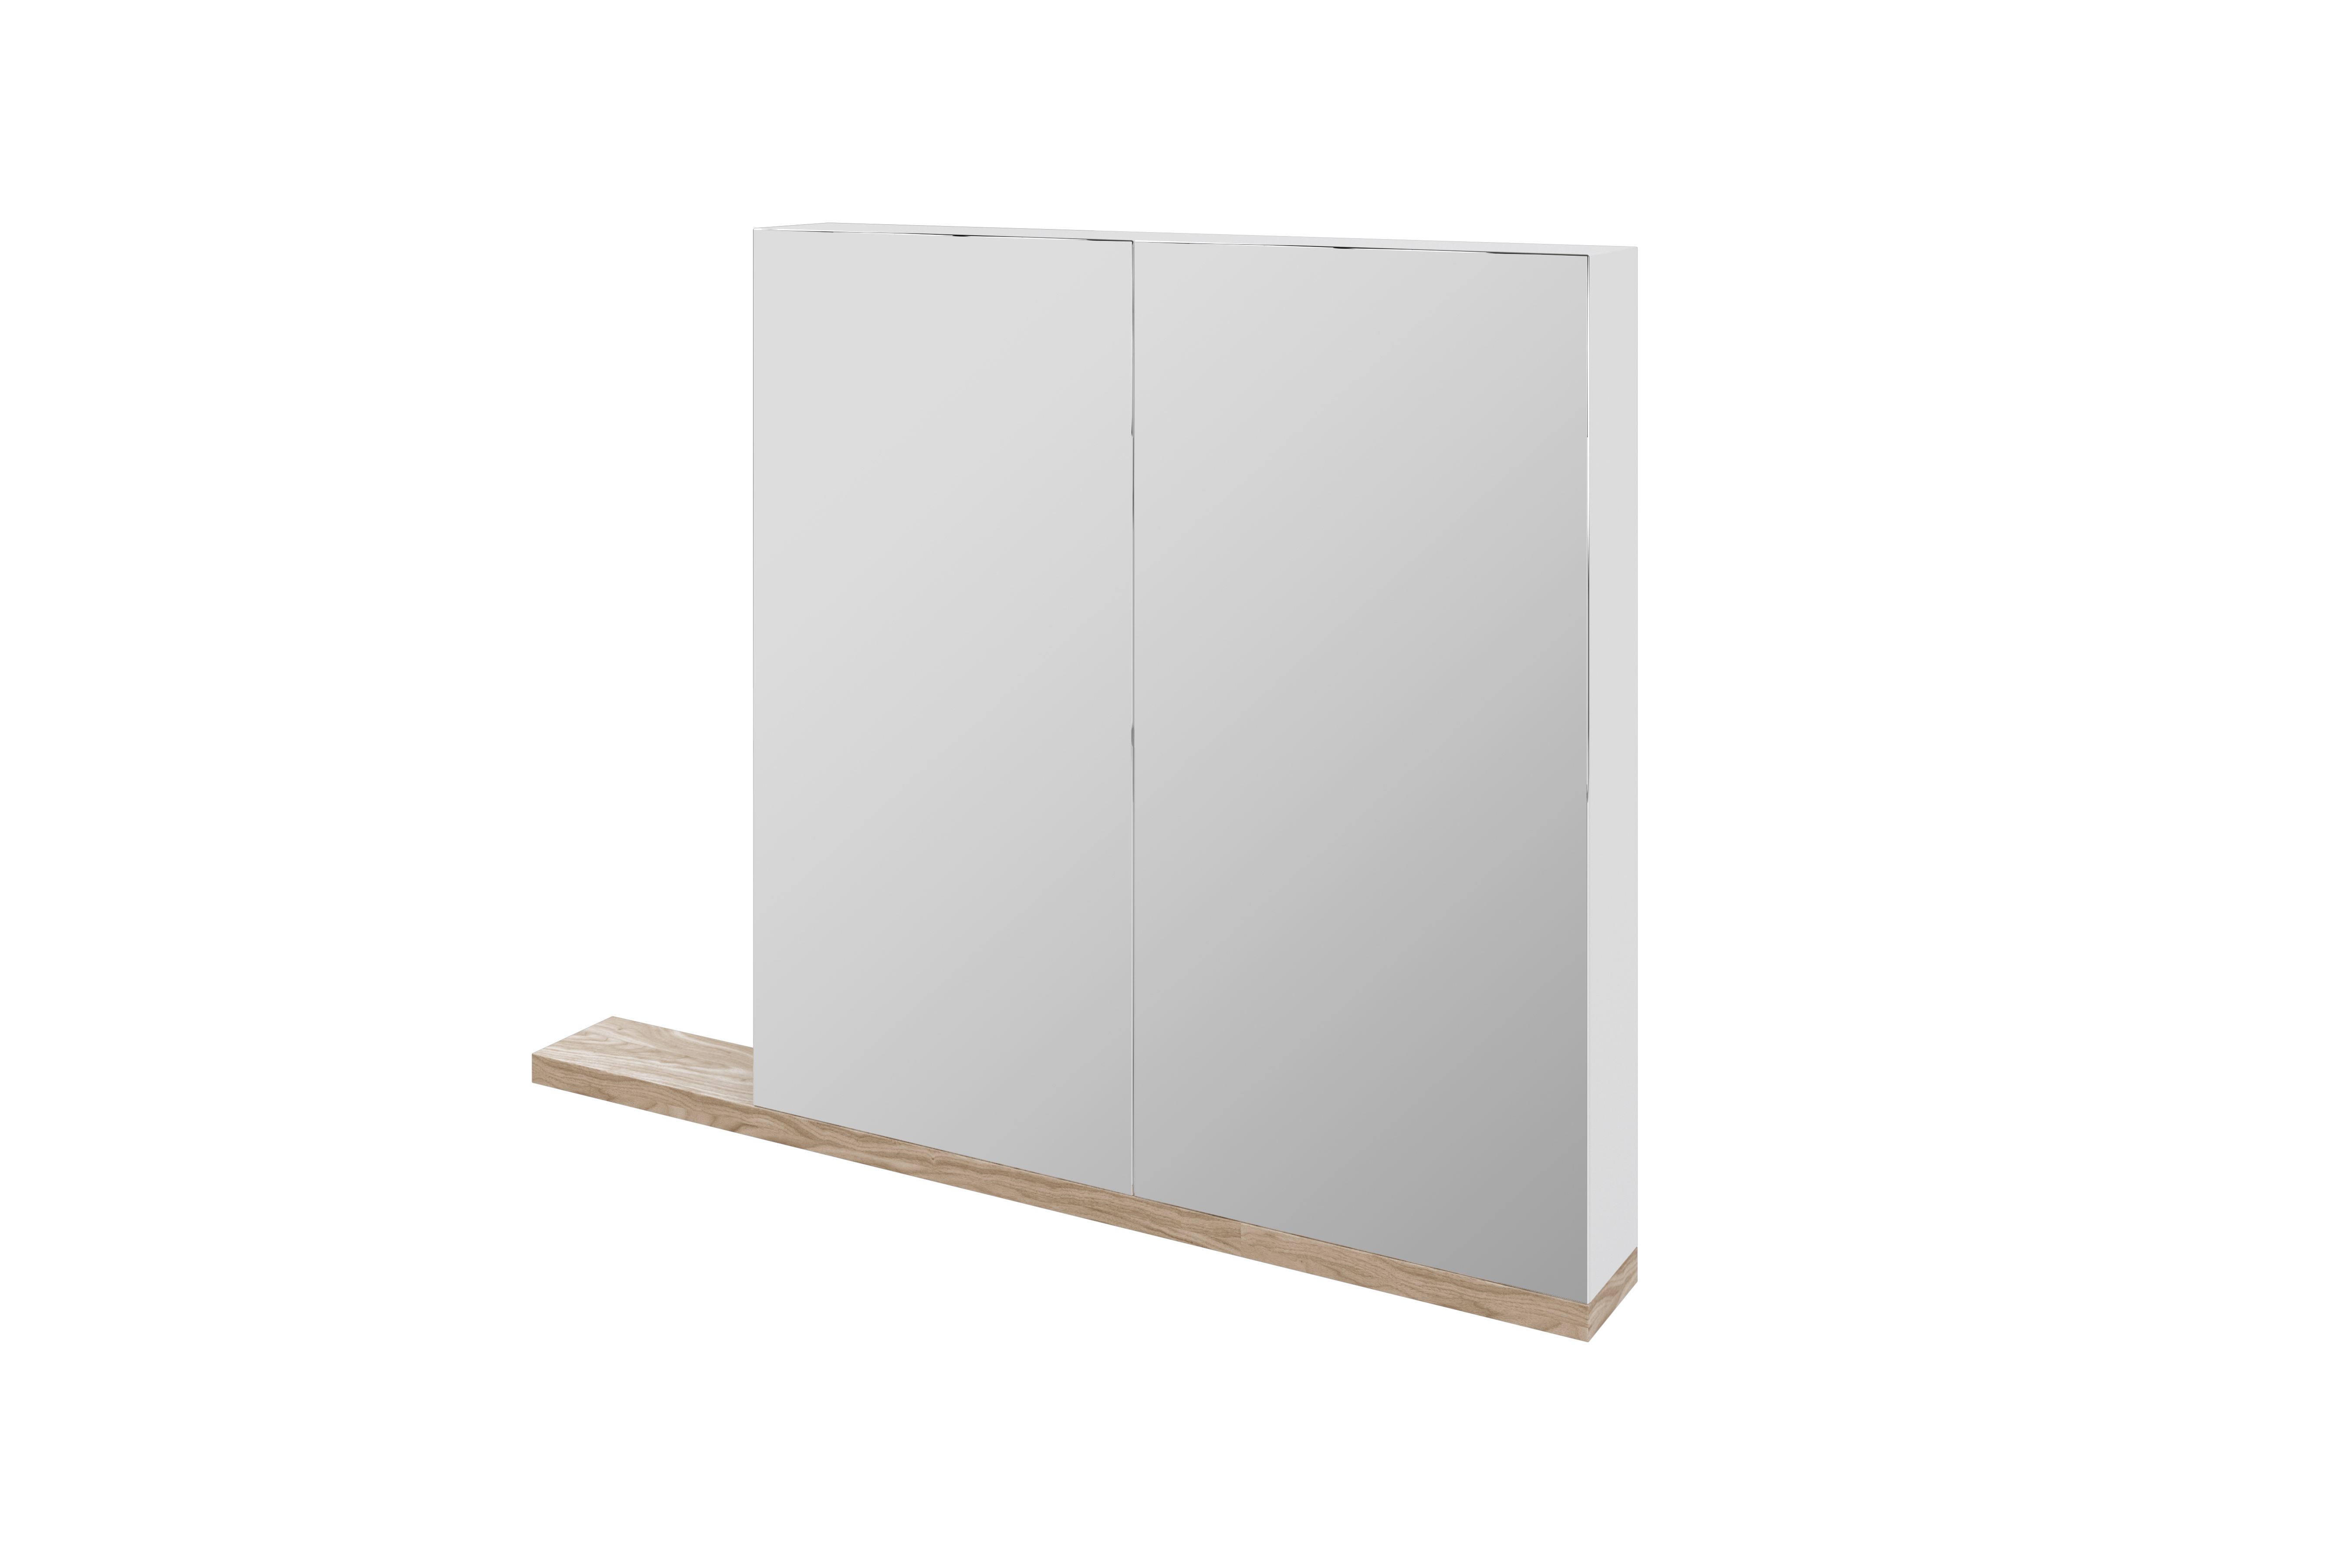 Maui_Cabinet_1200_Right_White